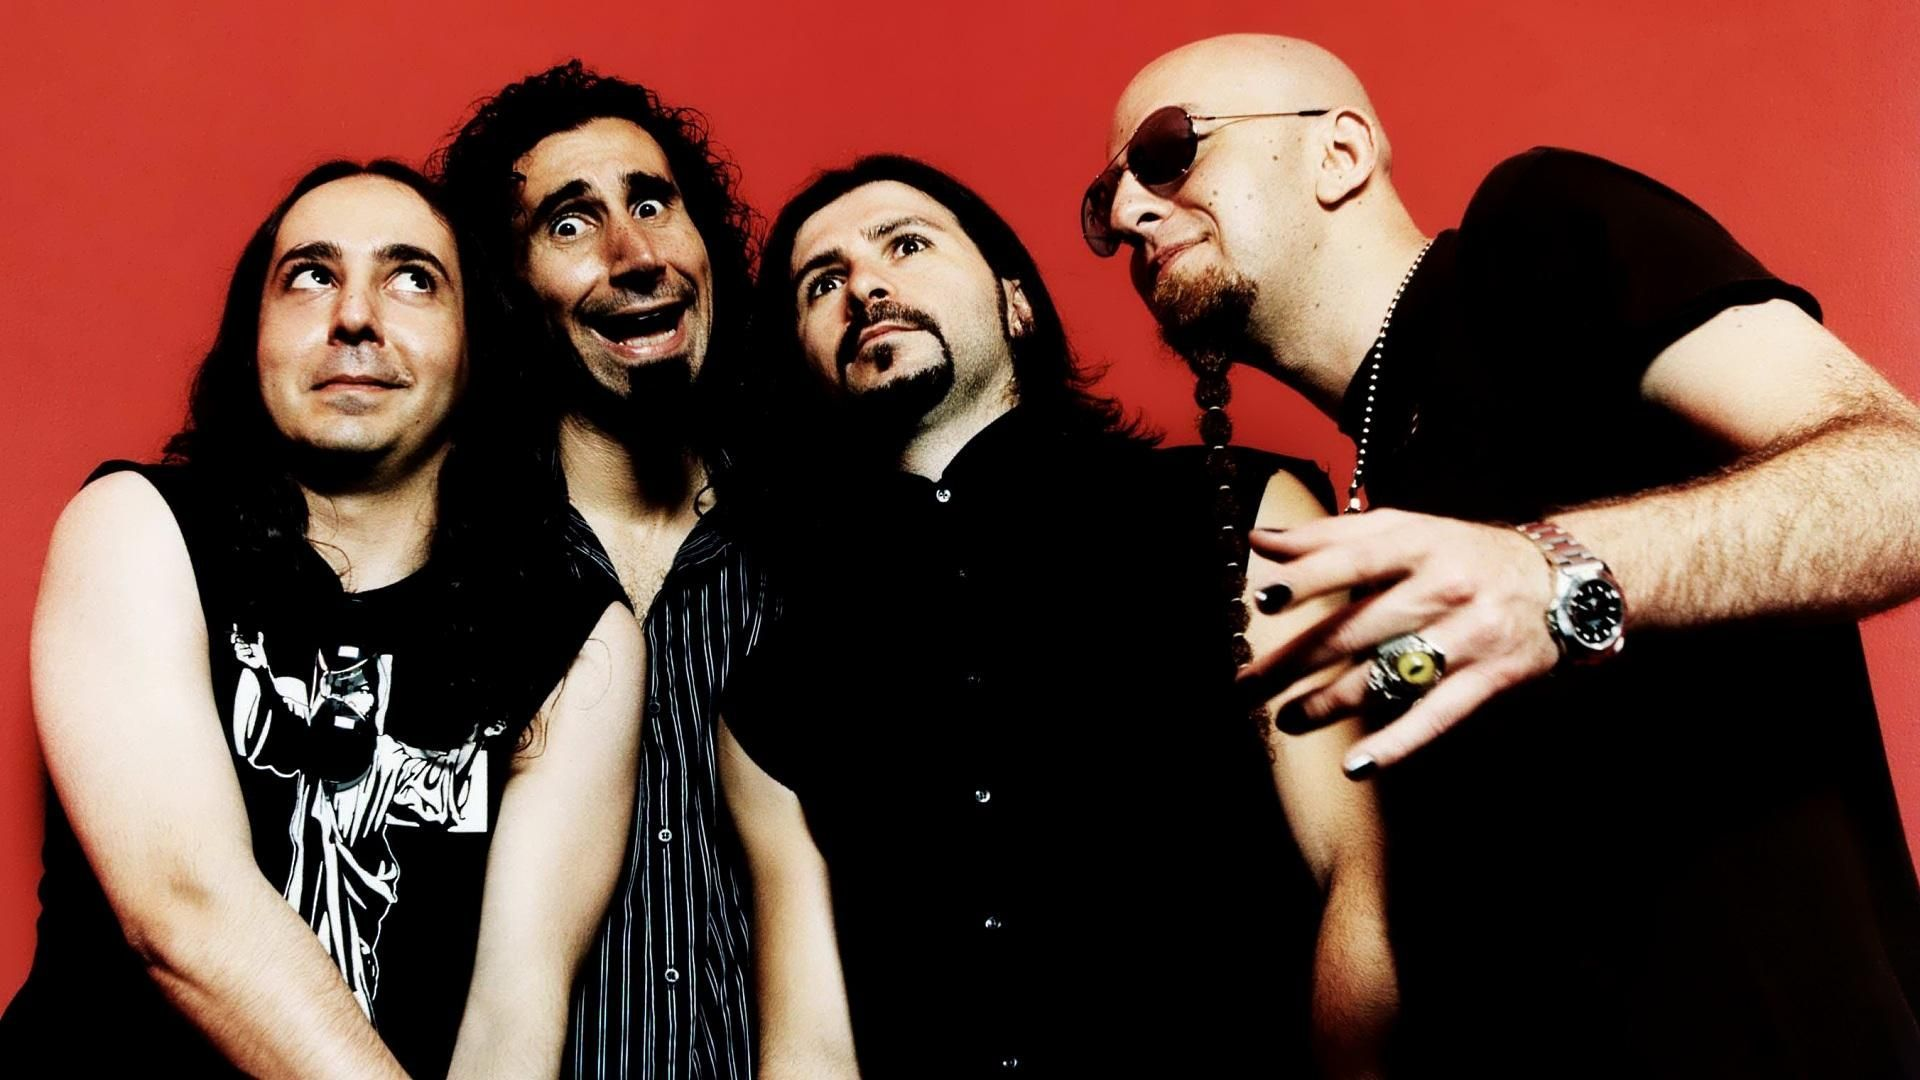 Shavo odadjian system of a down wiki fandom powered by wikia - System Of A Down Music Listen Free On Jango Pictures